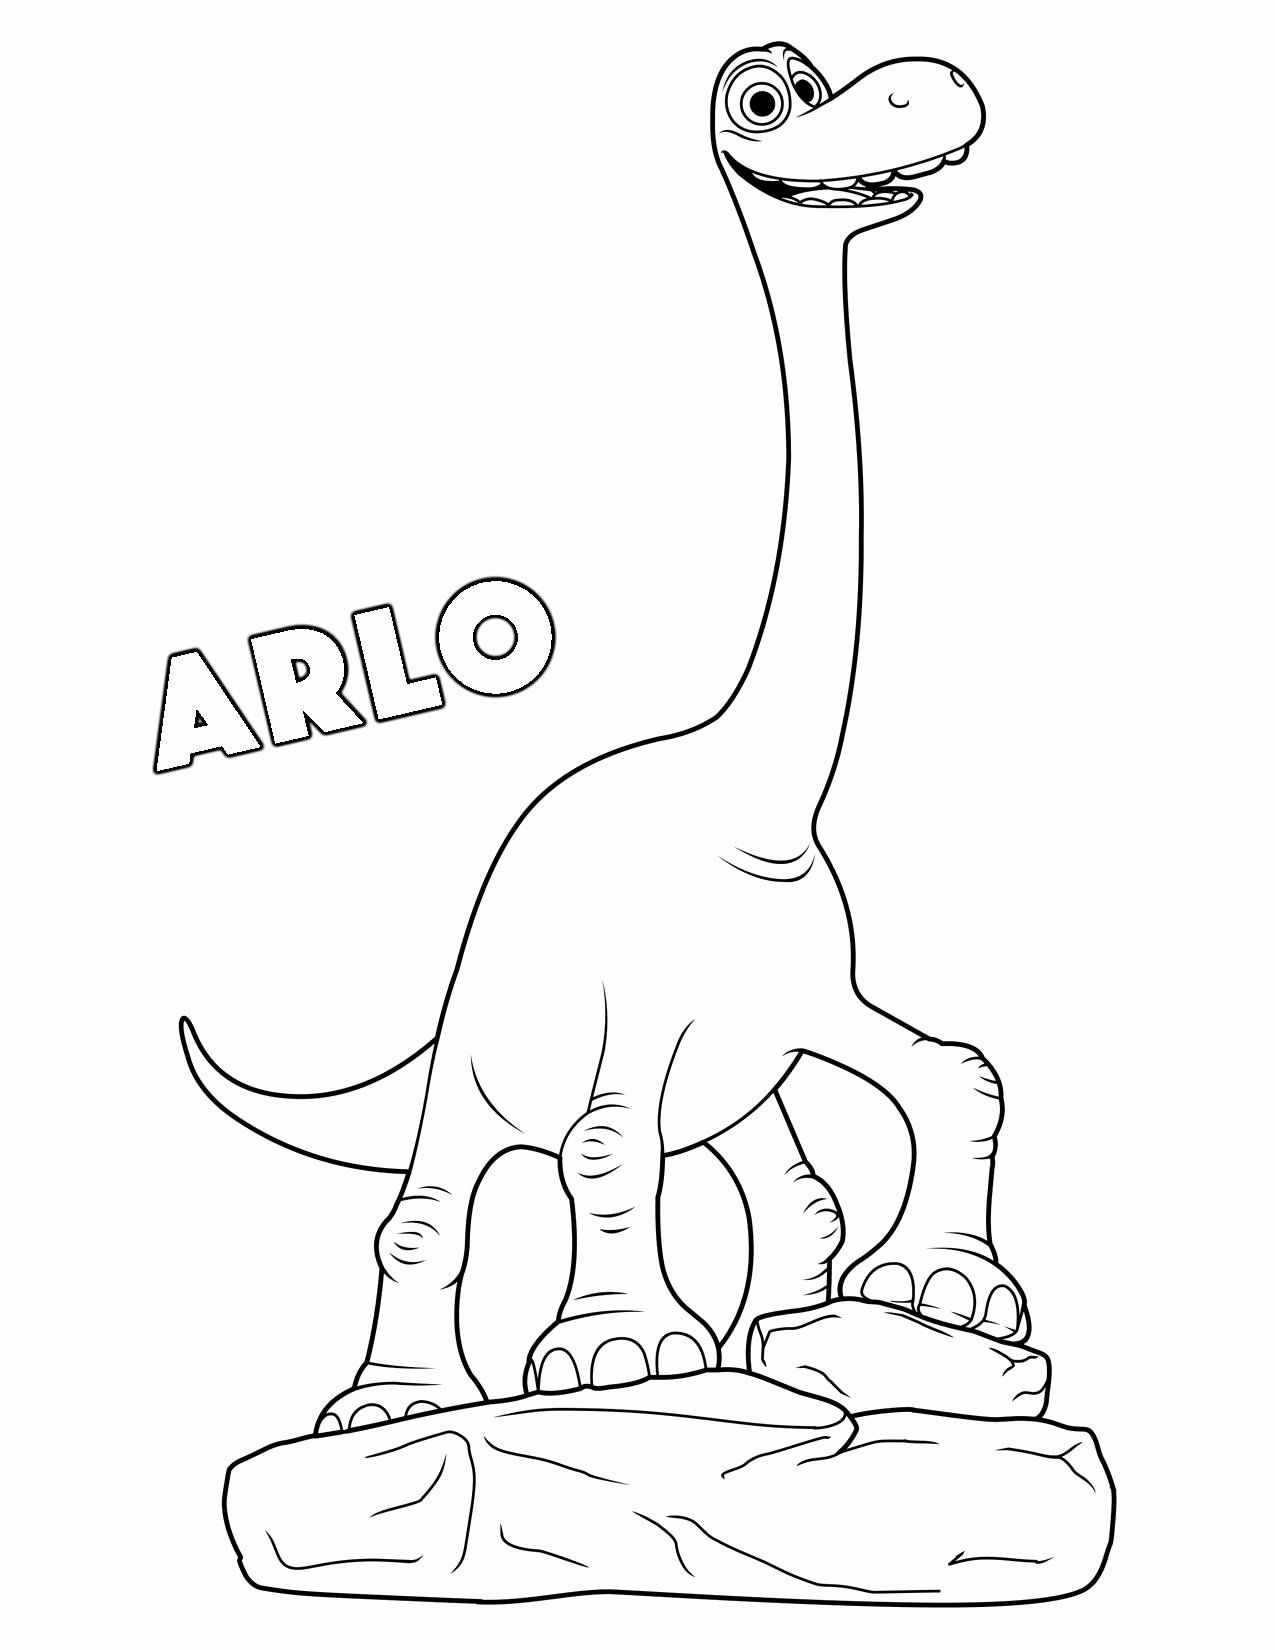 Coloring Pages Of Zoo Animals Inspirational Beautiful Extinct Animals For Kids Endangered Zoo Animal Coloring Pages Disney Coloring Pages Fall Coloring Pages [ 1650 x 1275 Pixel ]